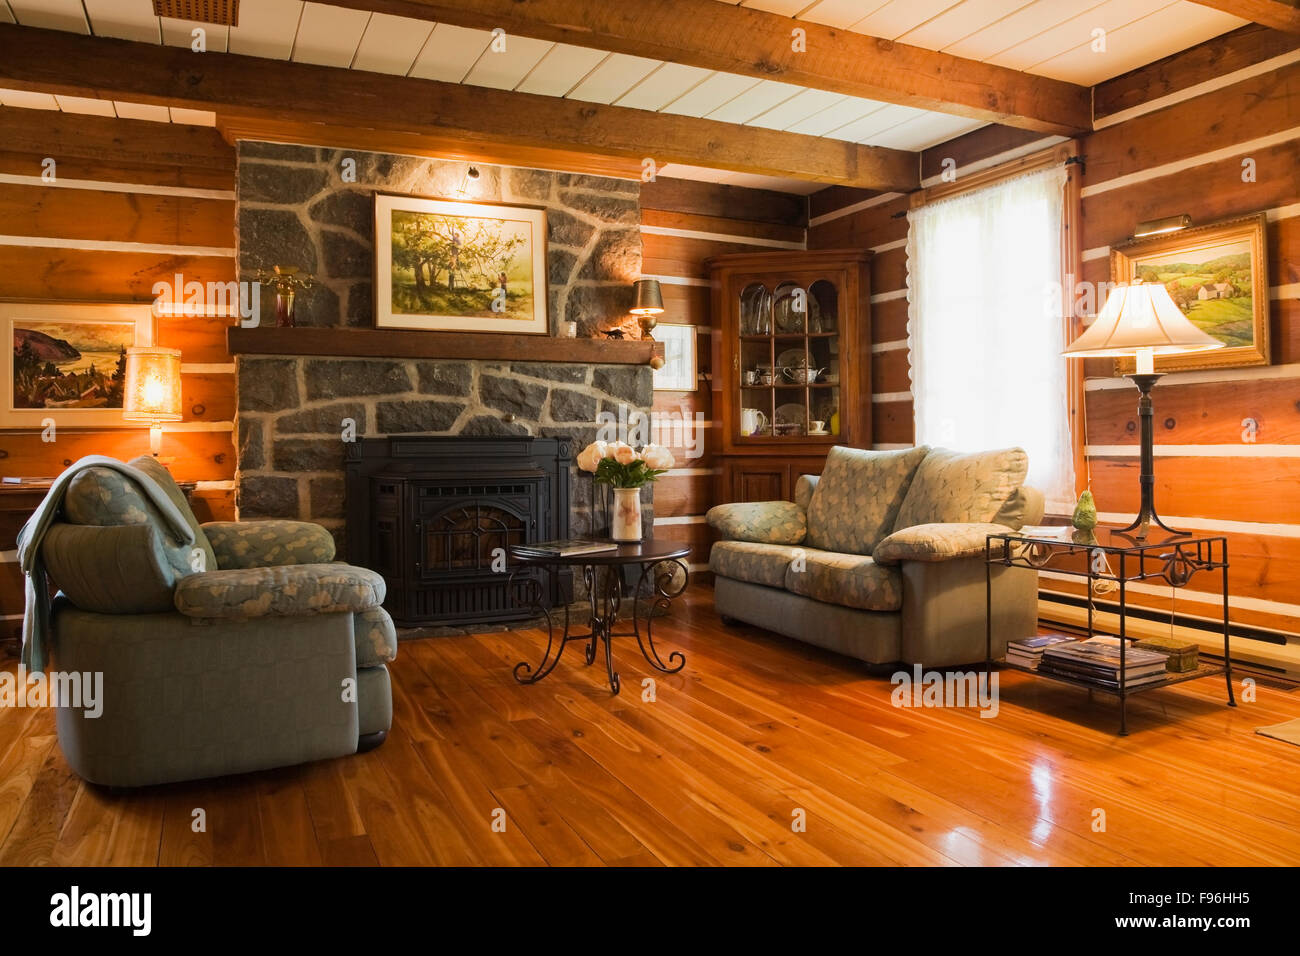 monteregie quebec stockfotos monteregie quebec bilder alamy. Black Bedroom Furniture Sets. Home Design Ideas